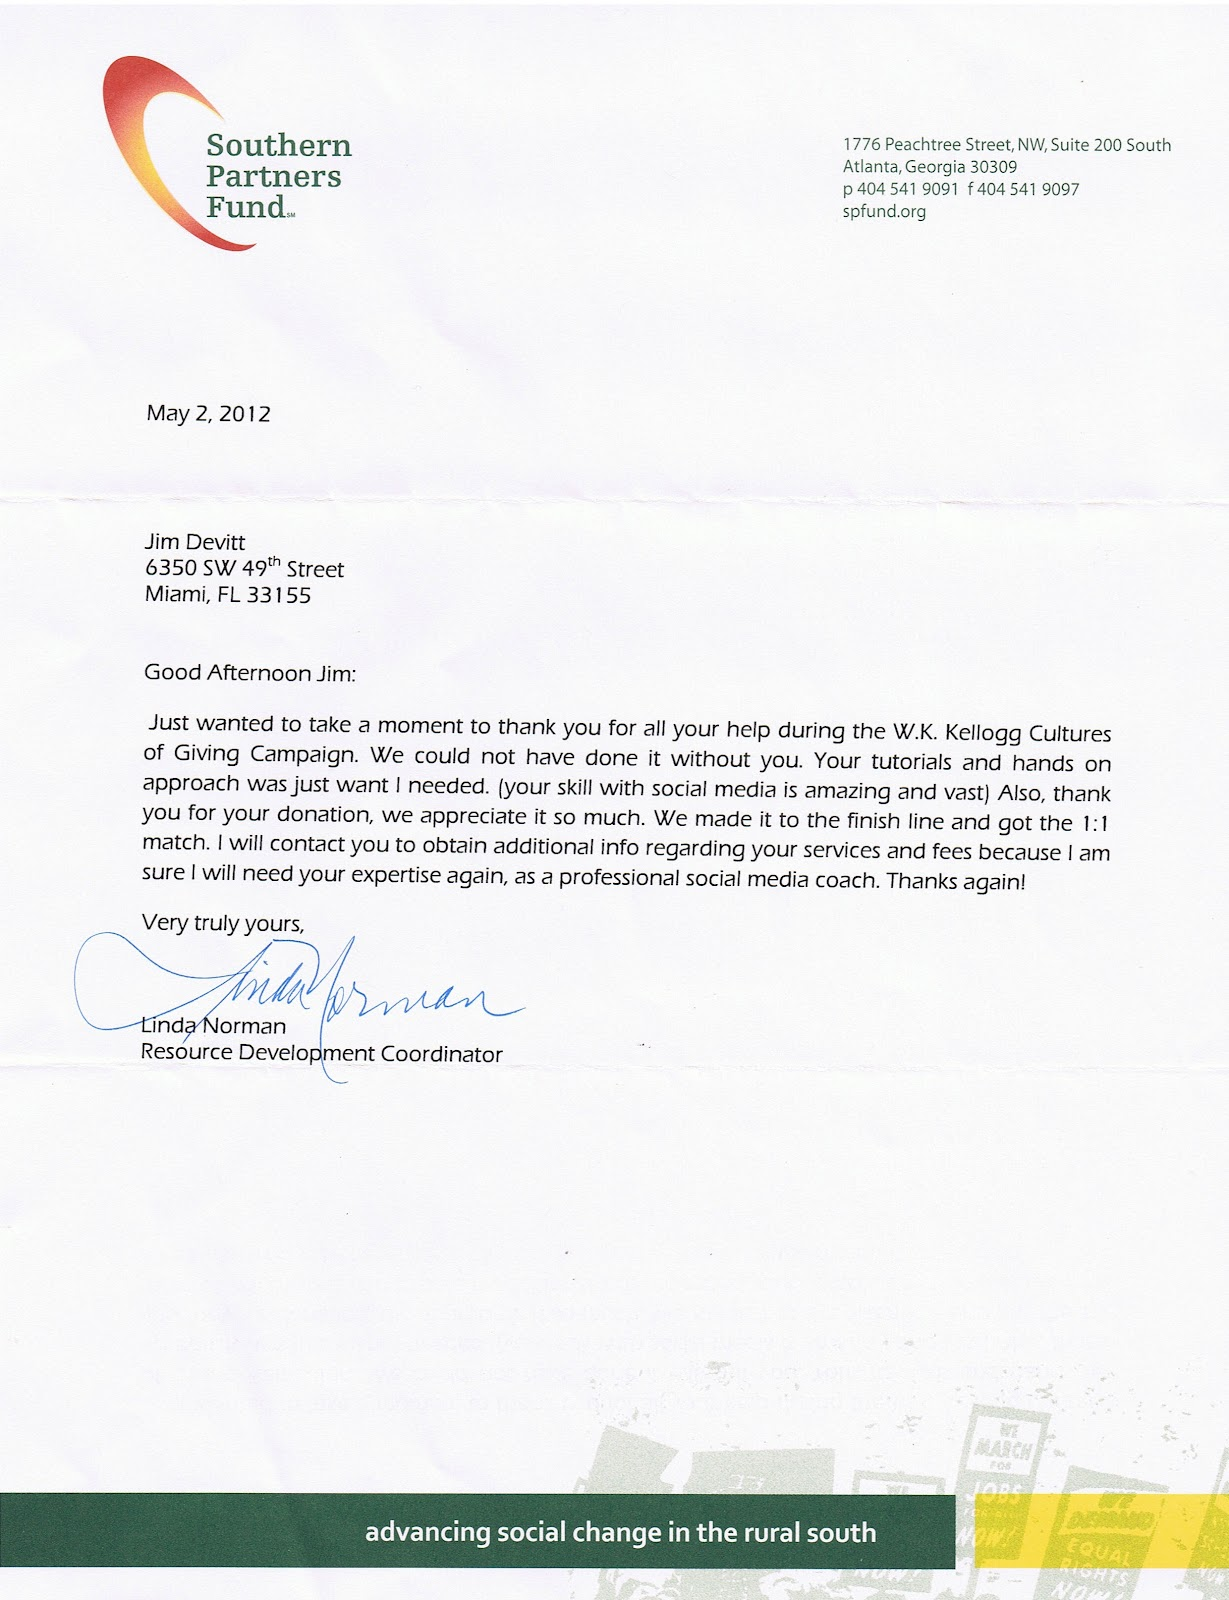 Jim Devitt Nice Reference Letter From A Client